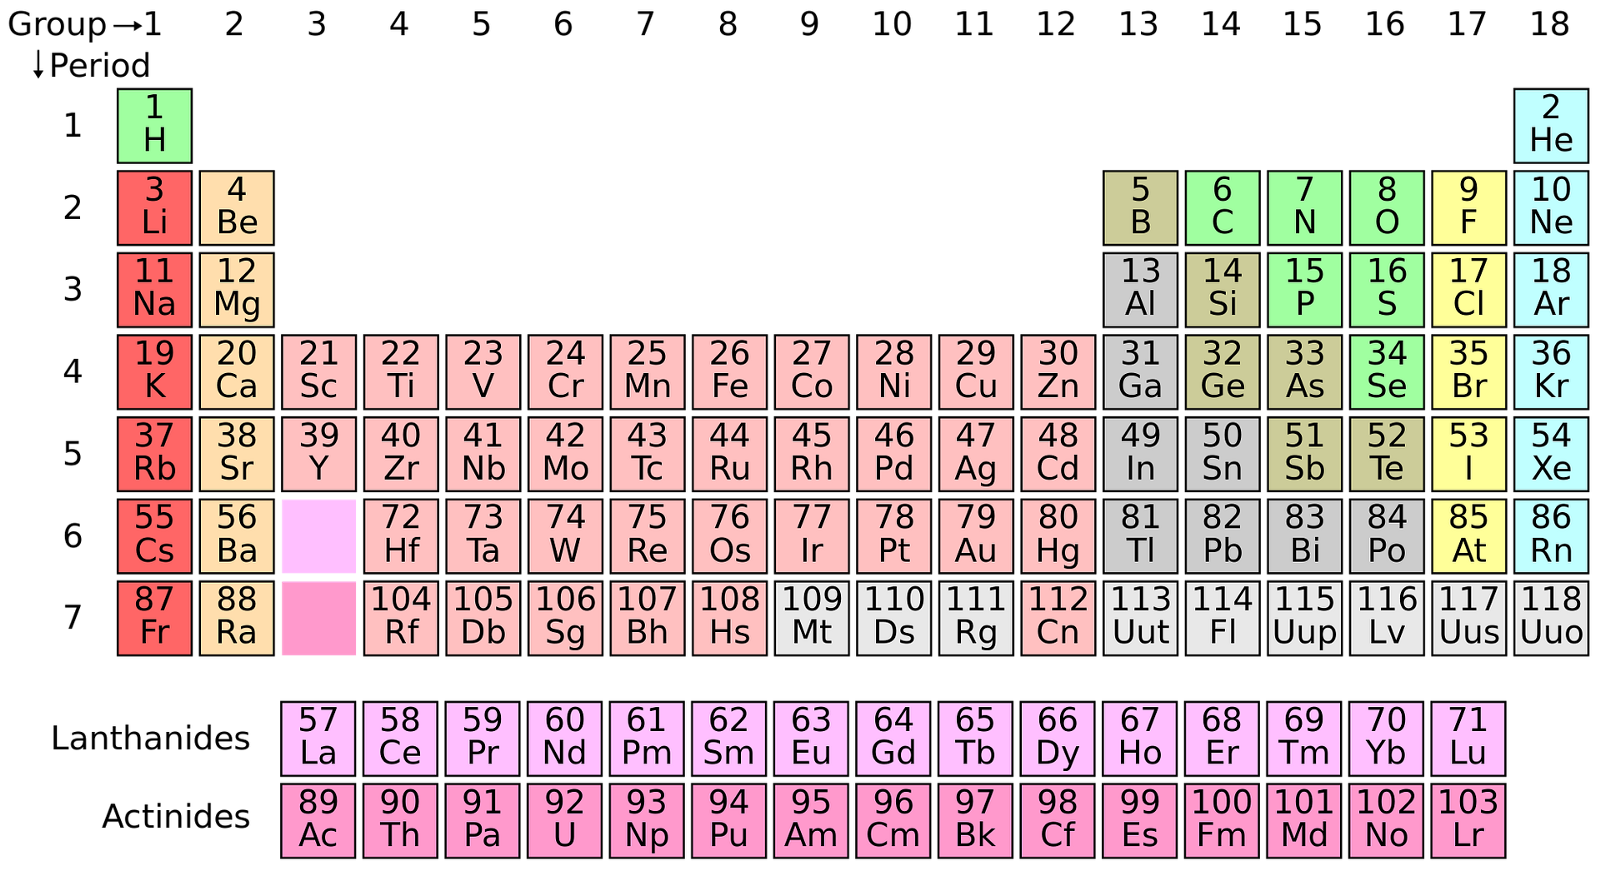 The search for the battery of tomorrow how batteries work why what if one simply moved down a row on the periodic table from element number three lithium to element number 11 sodium gamestrikefo Choice Image